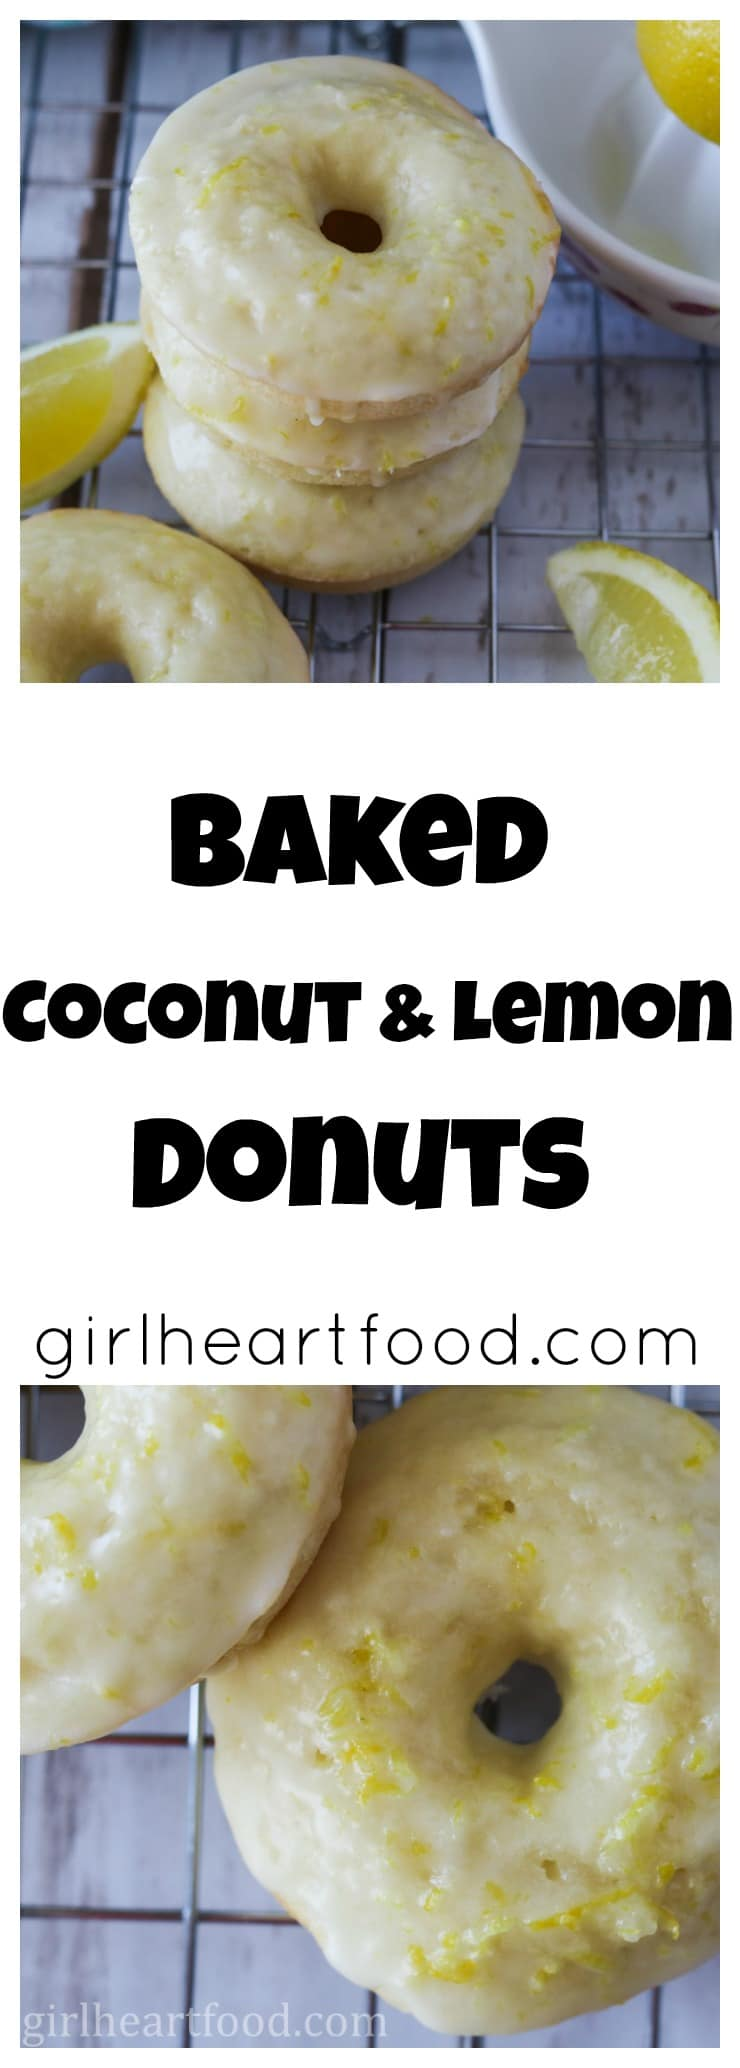 These Baked Coconut and Lemon Donuts are packed to the max with coconut and zesty lemon! There's three forms of coconut in these-coconut oil, shredded coconut and coconut extract. Plus, there's lots of fresh lemon zest and juice. #donuts #bakeddonuts #glazeddonuts #dessert #coconut #lemon